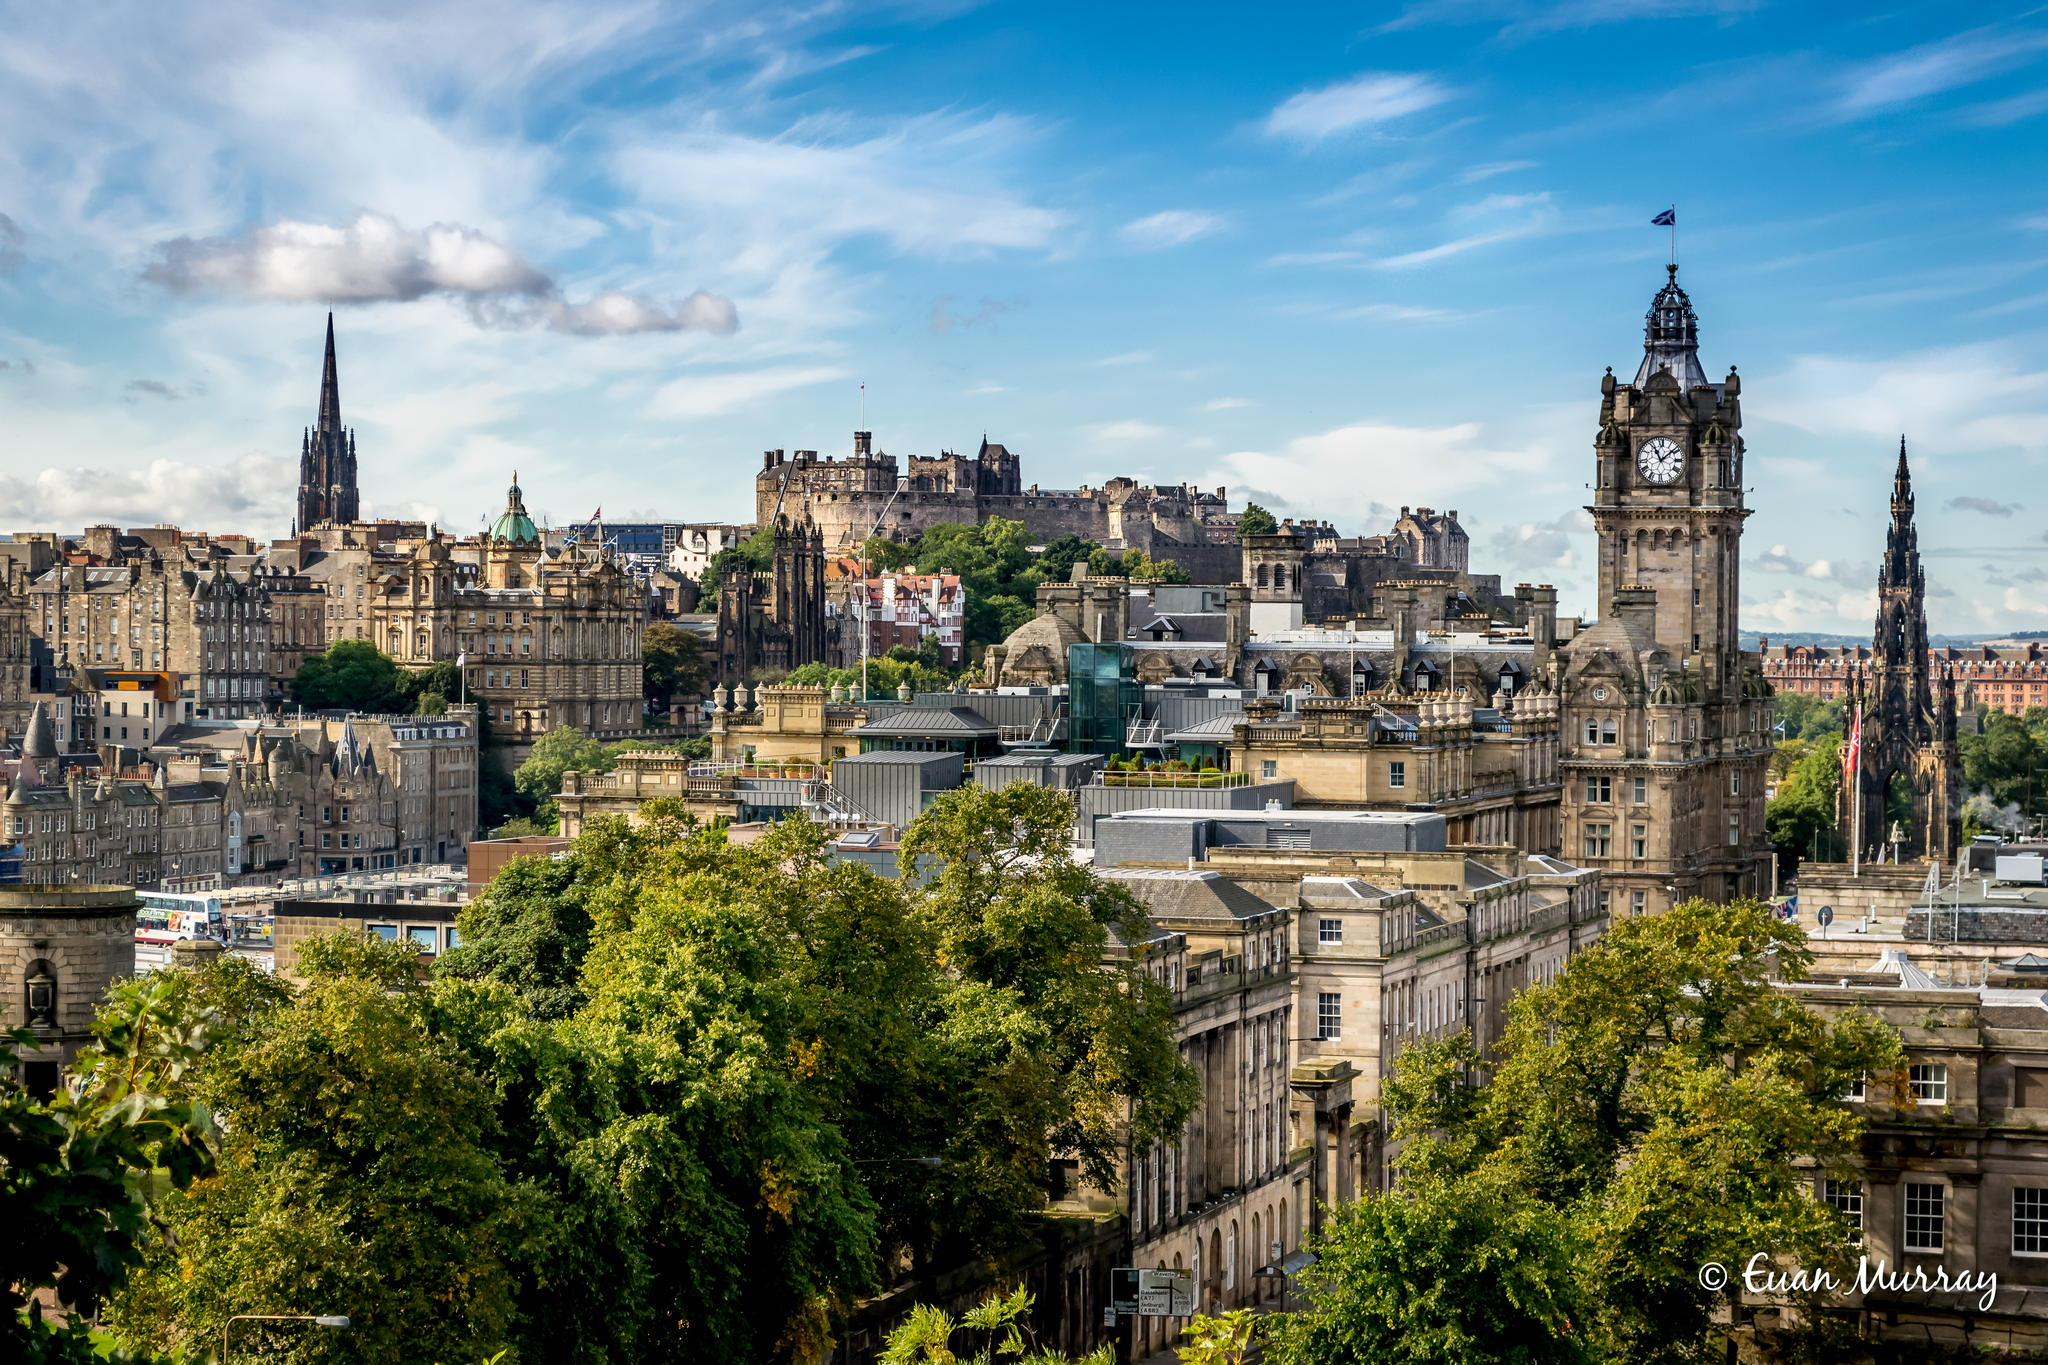 Edinburgh, the capital and historical city of Scotland